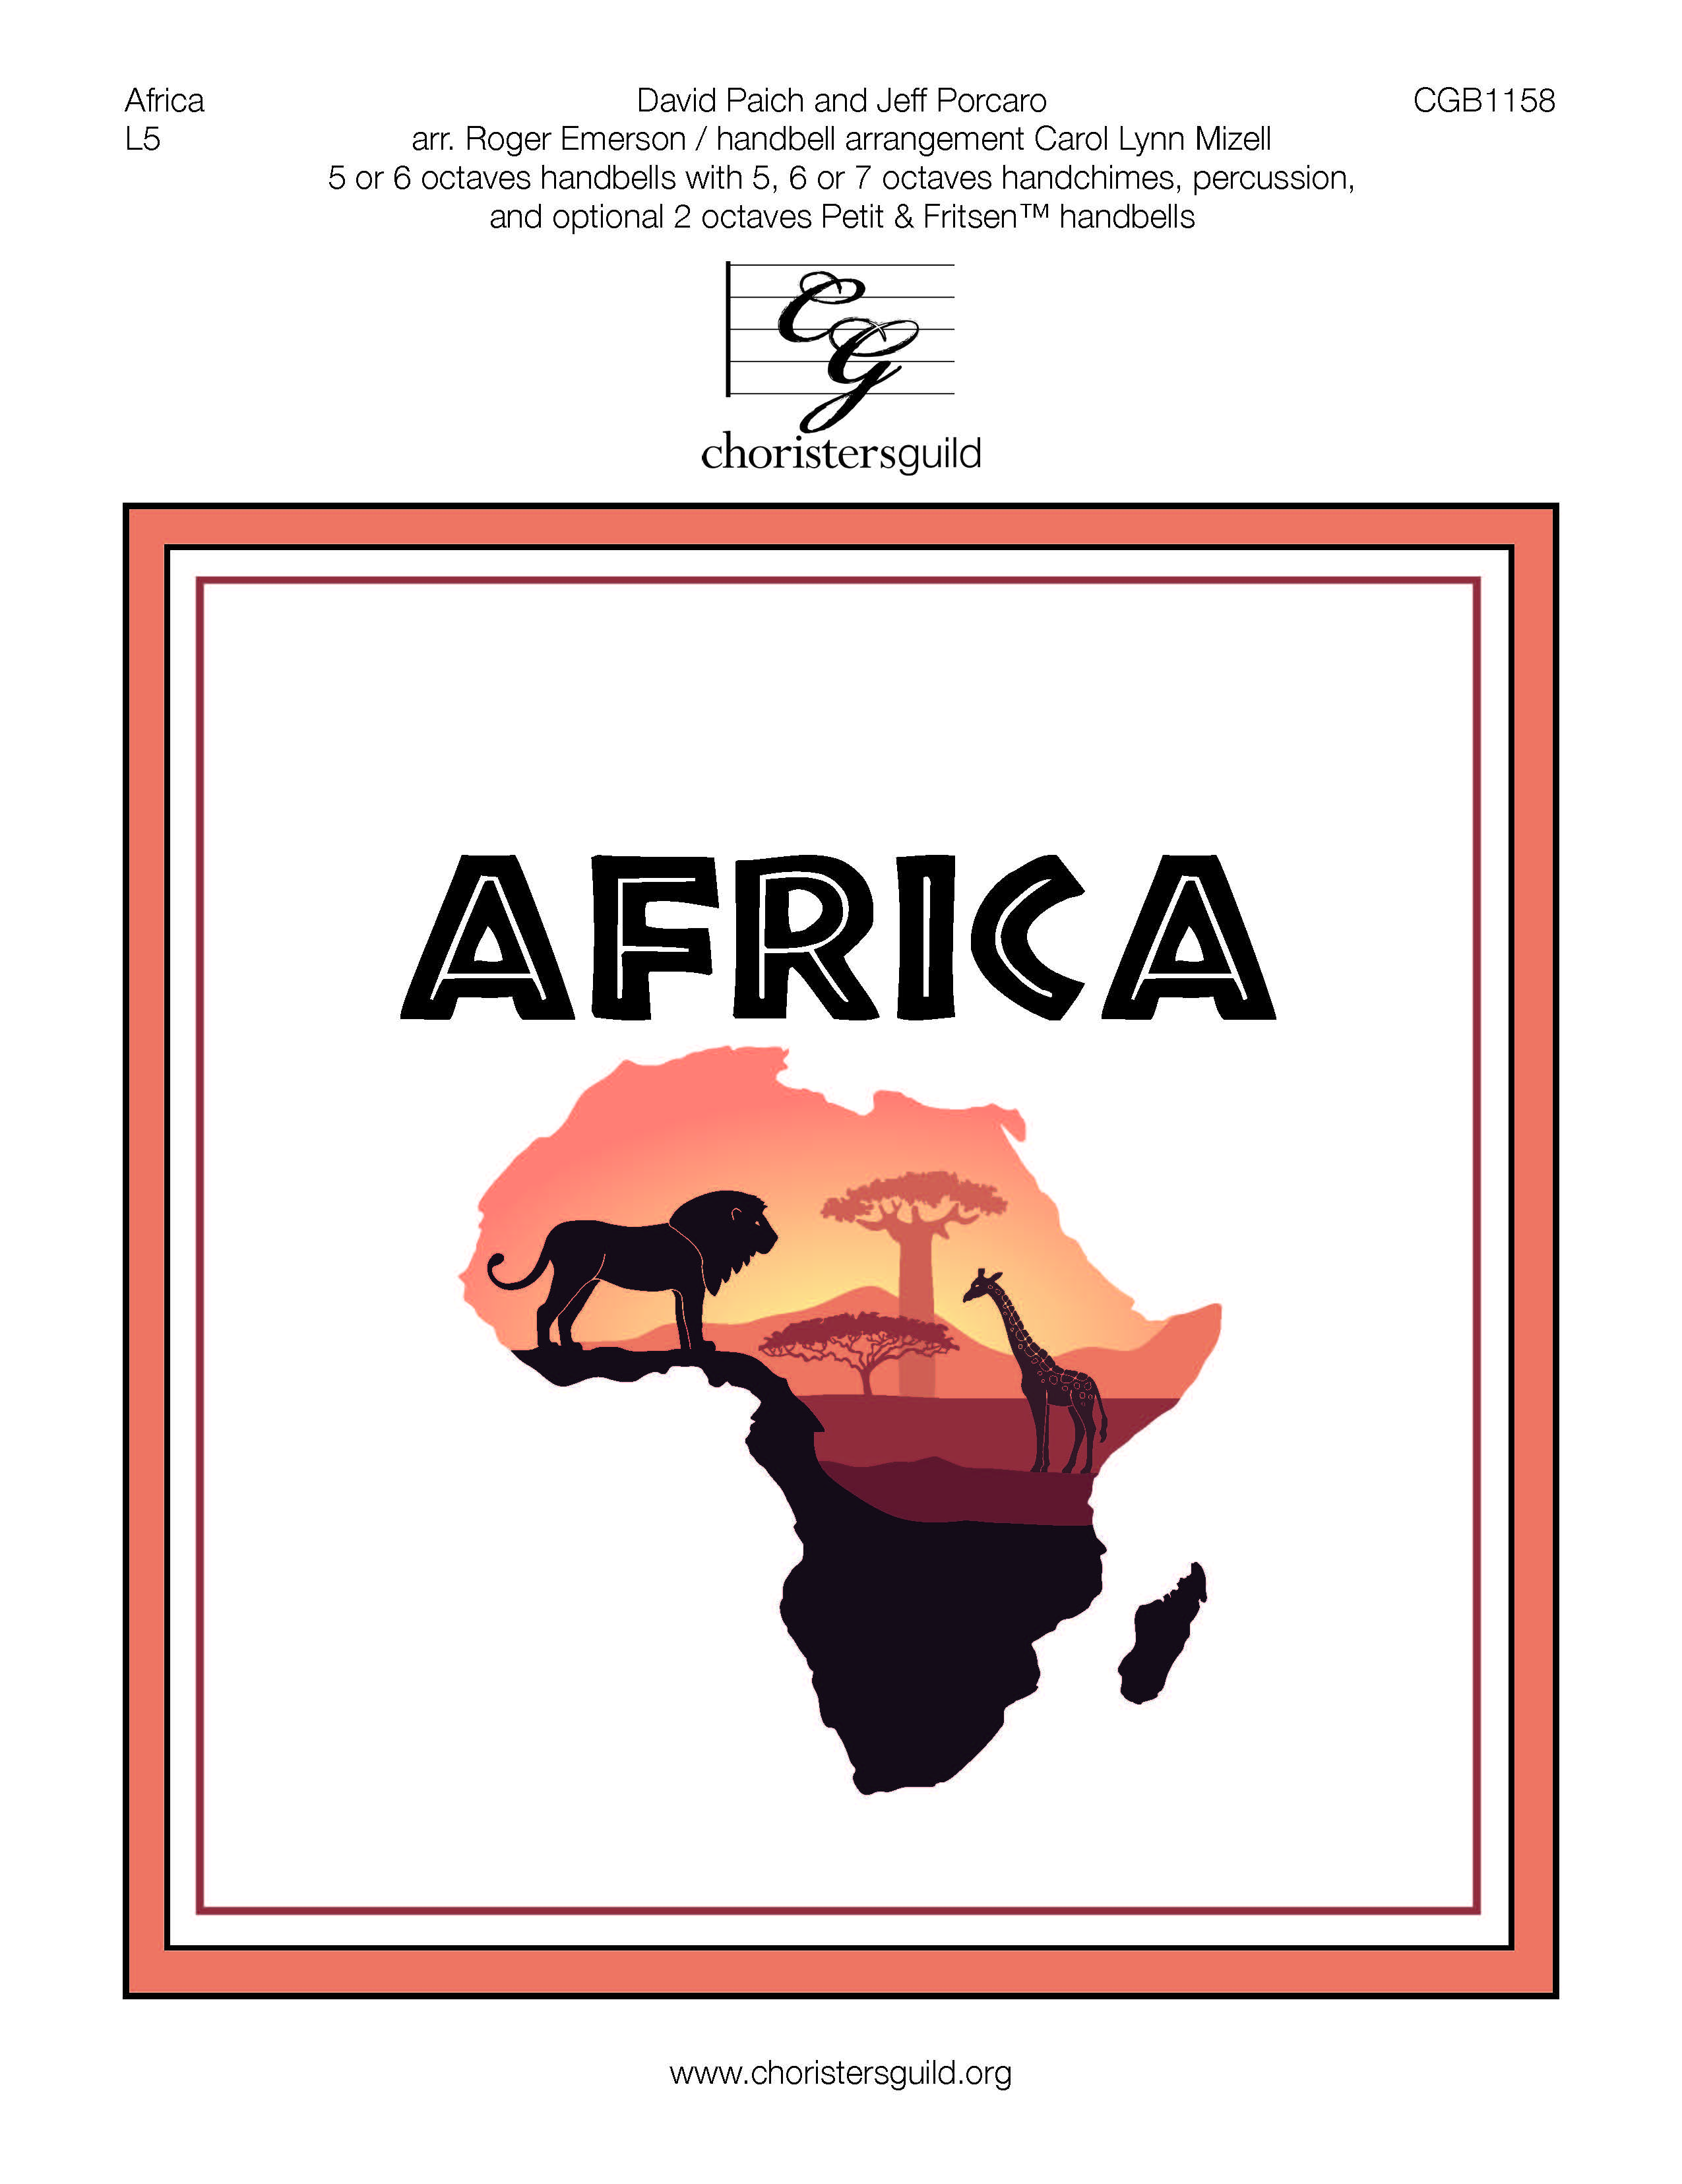 Africa - 5-7 octaves